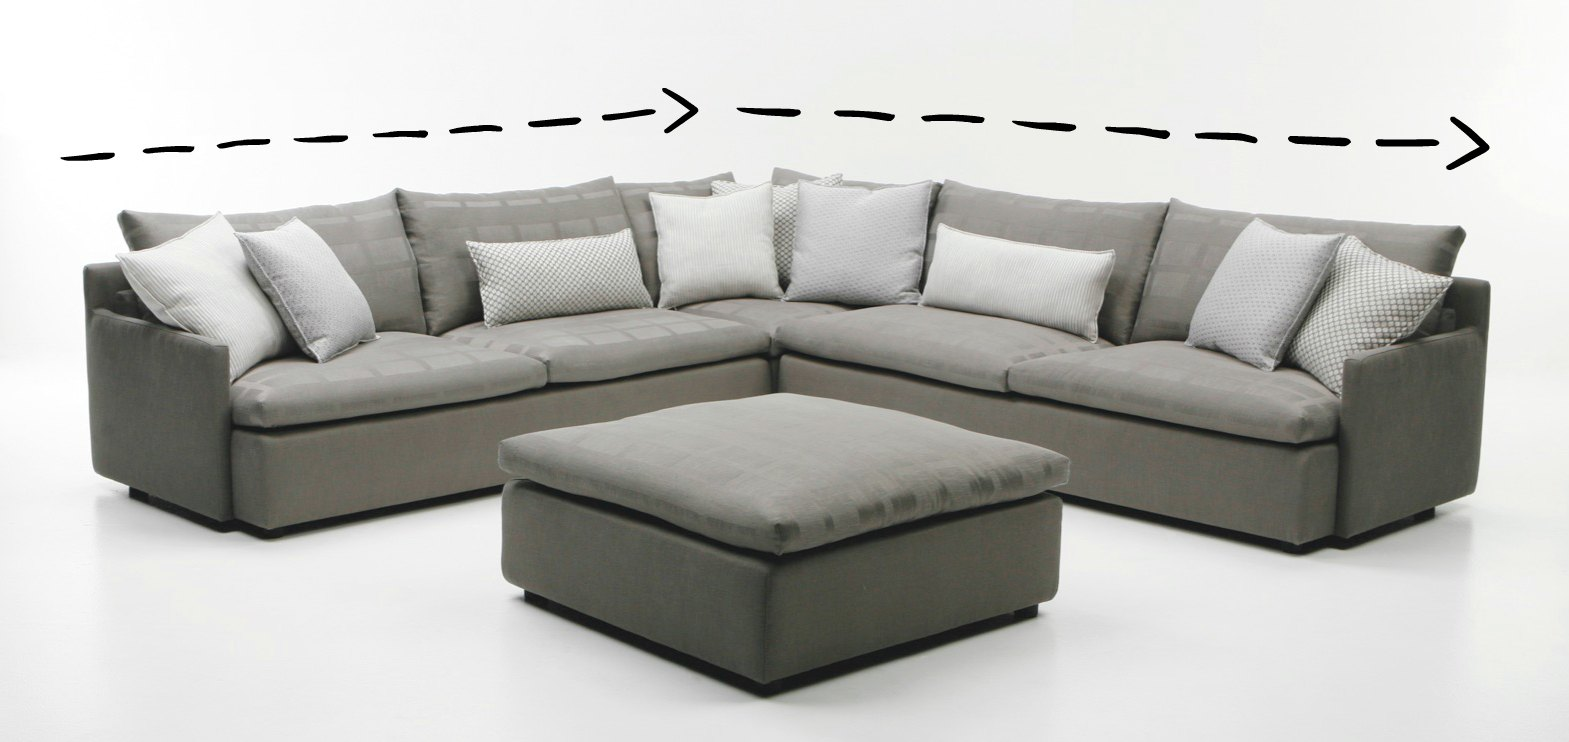 or sofa montreal fabric sectional a red steal poundex furniture ii